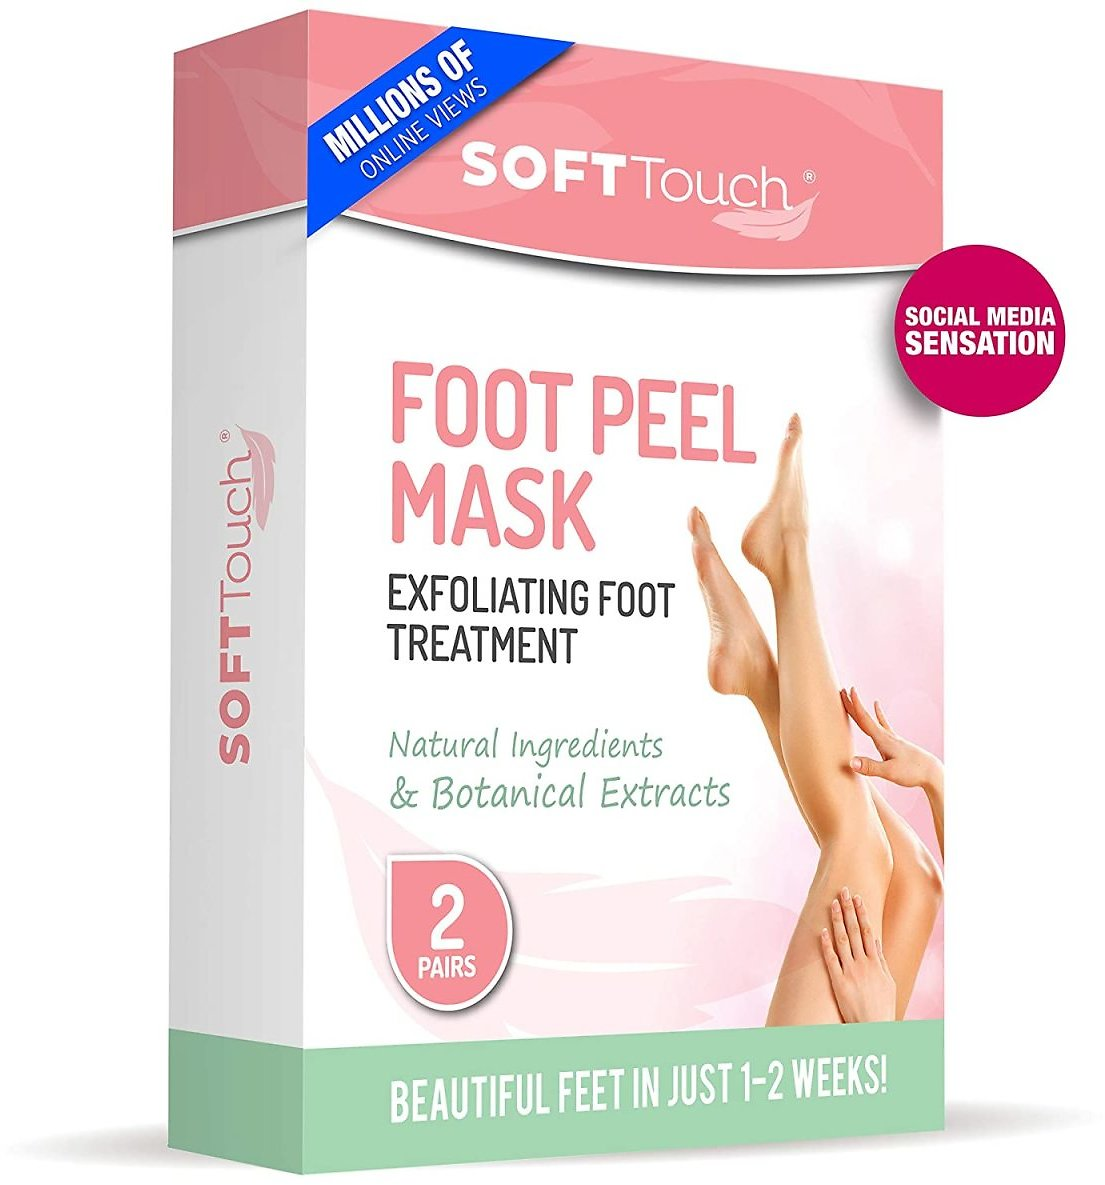 2 Pack Foot Peel Mask - Natural Foot Care Exfoliating Treatment for $19.96 After Coupon